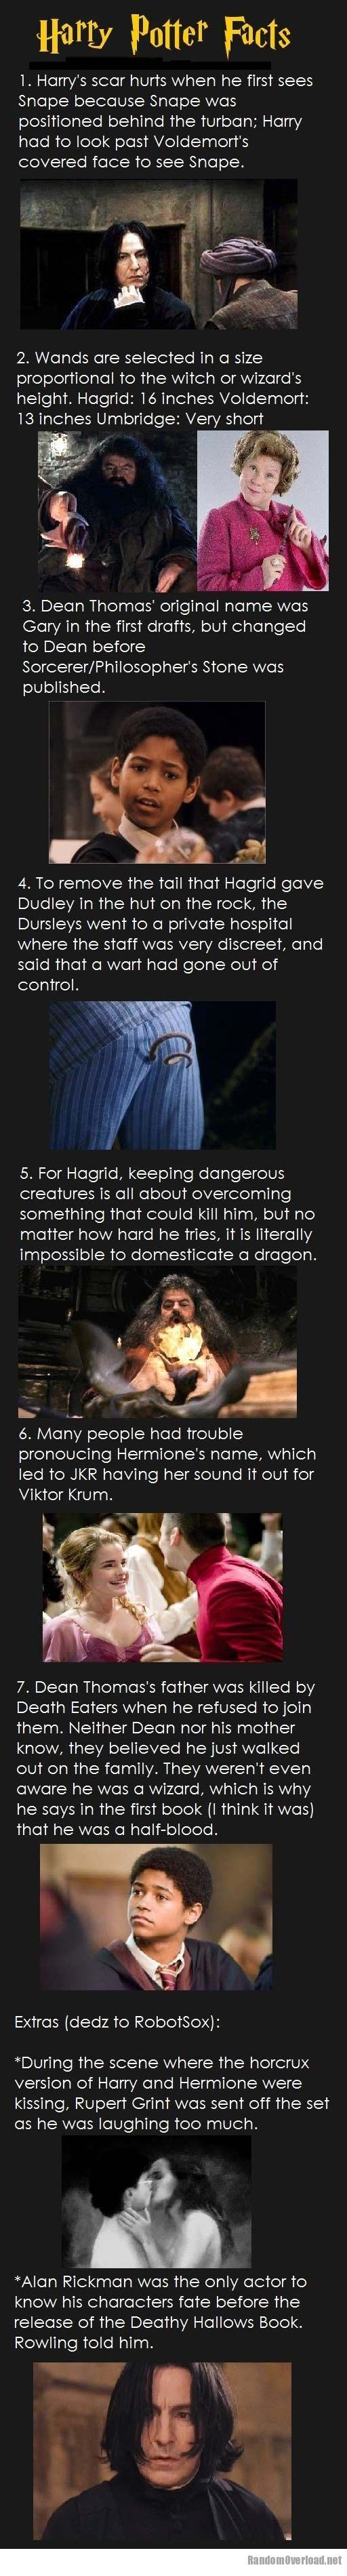 Harry Potter Book Facts : Facts you probably didn t know about harry potter